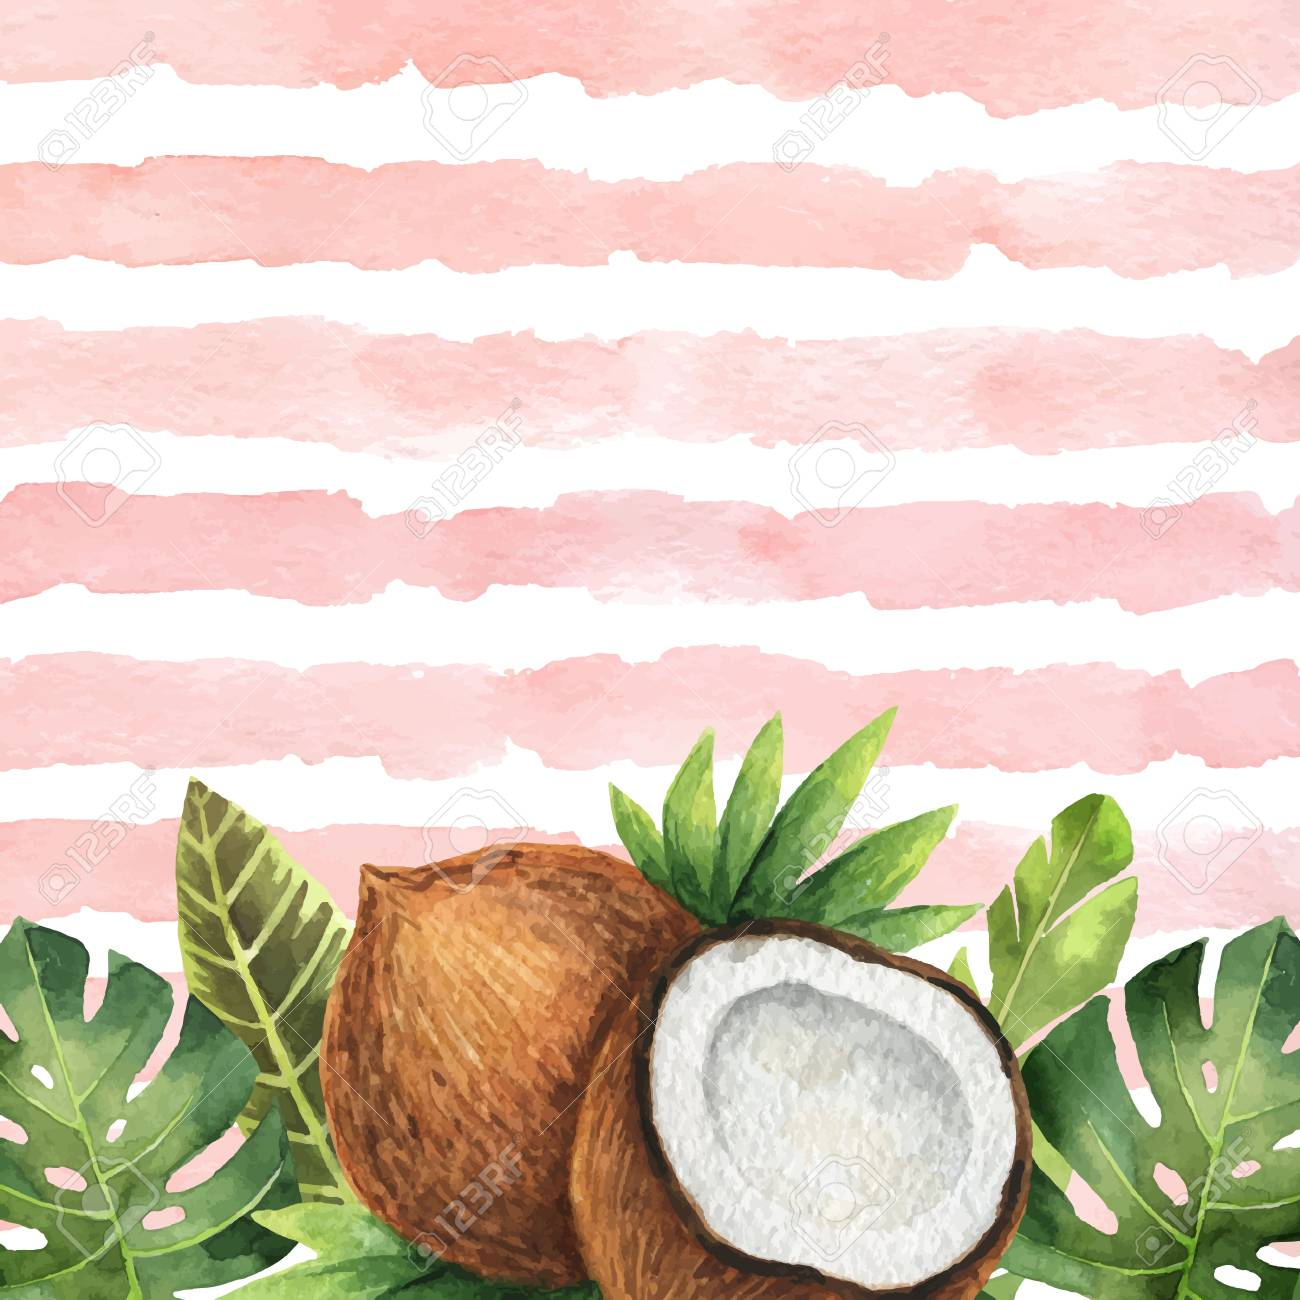 Watercolor Vector Banner Tropical Leaves And Coconut Isolated Royalty Free Cliparts Vectors And Stock Illustration Image 106955628 A wide variety of artificial tropical leaves options are available to you, such as material, occasion, and plant type. watercolor vector banner tropical leaves and coconut isolated